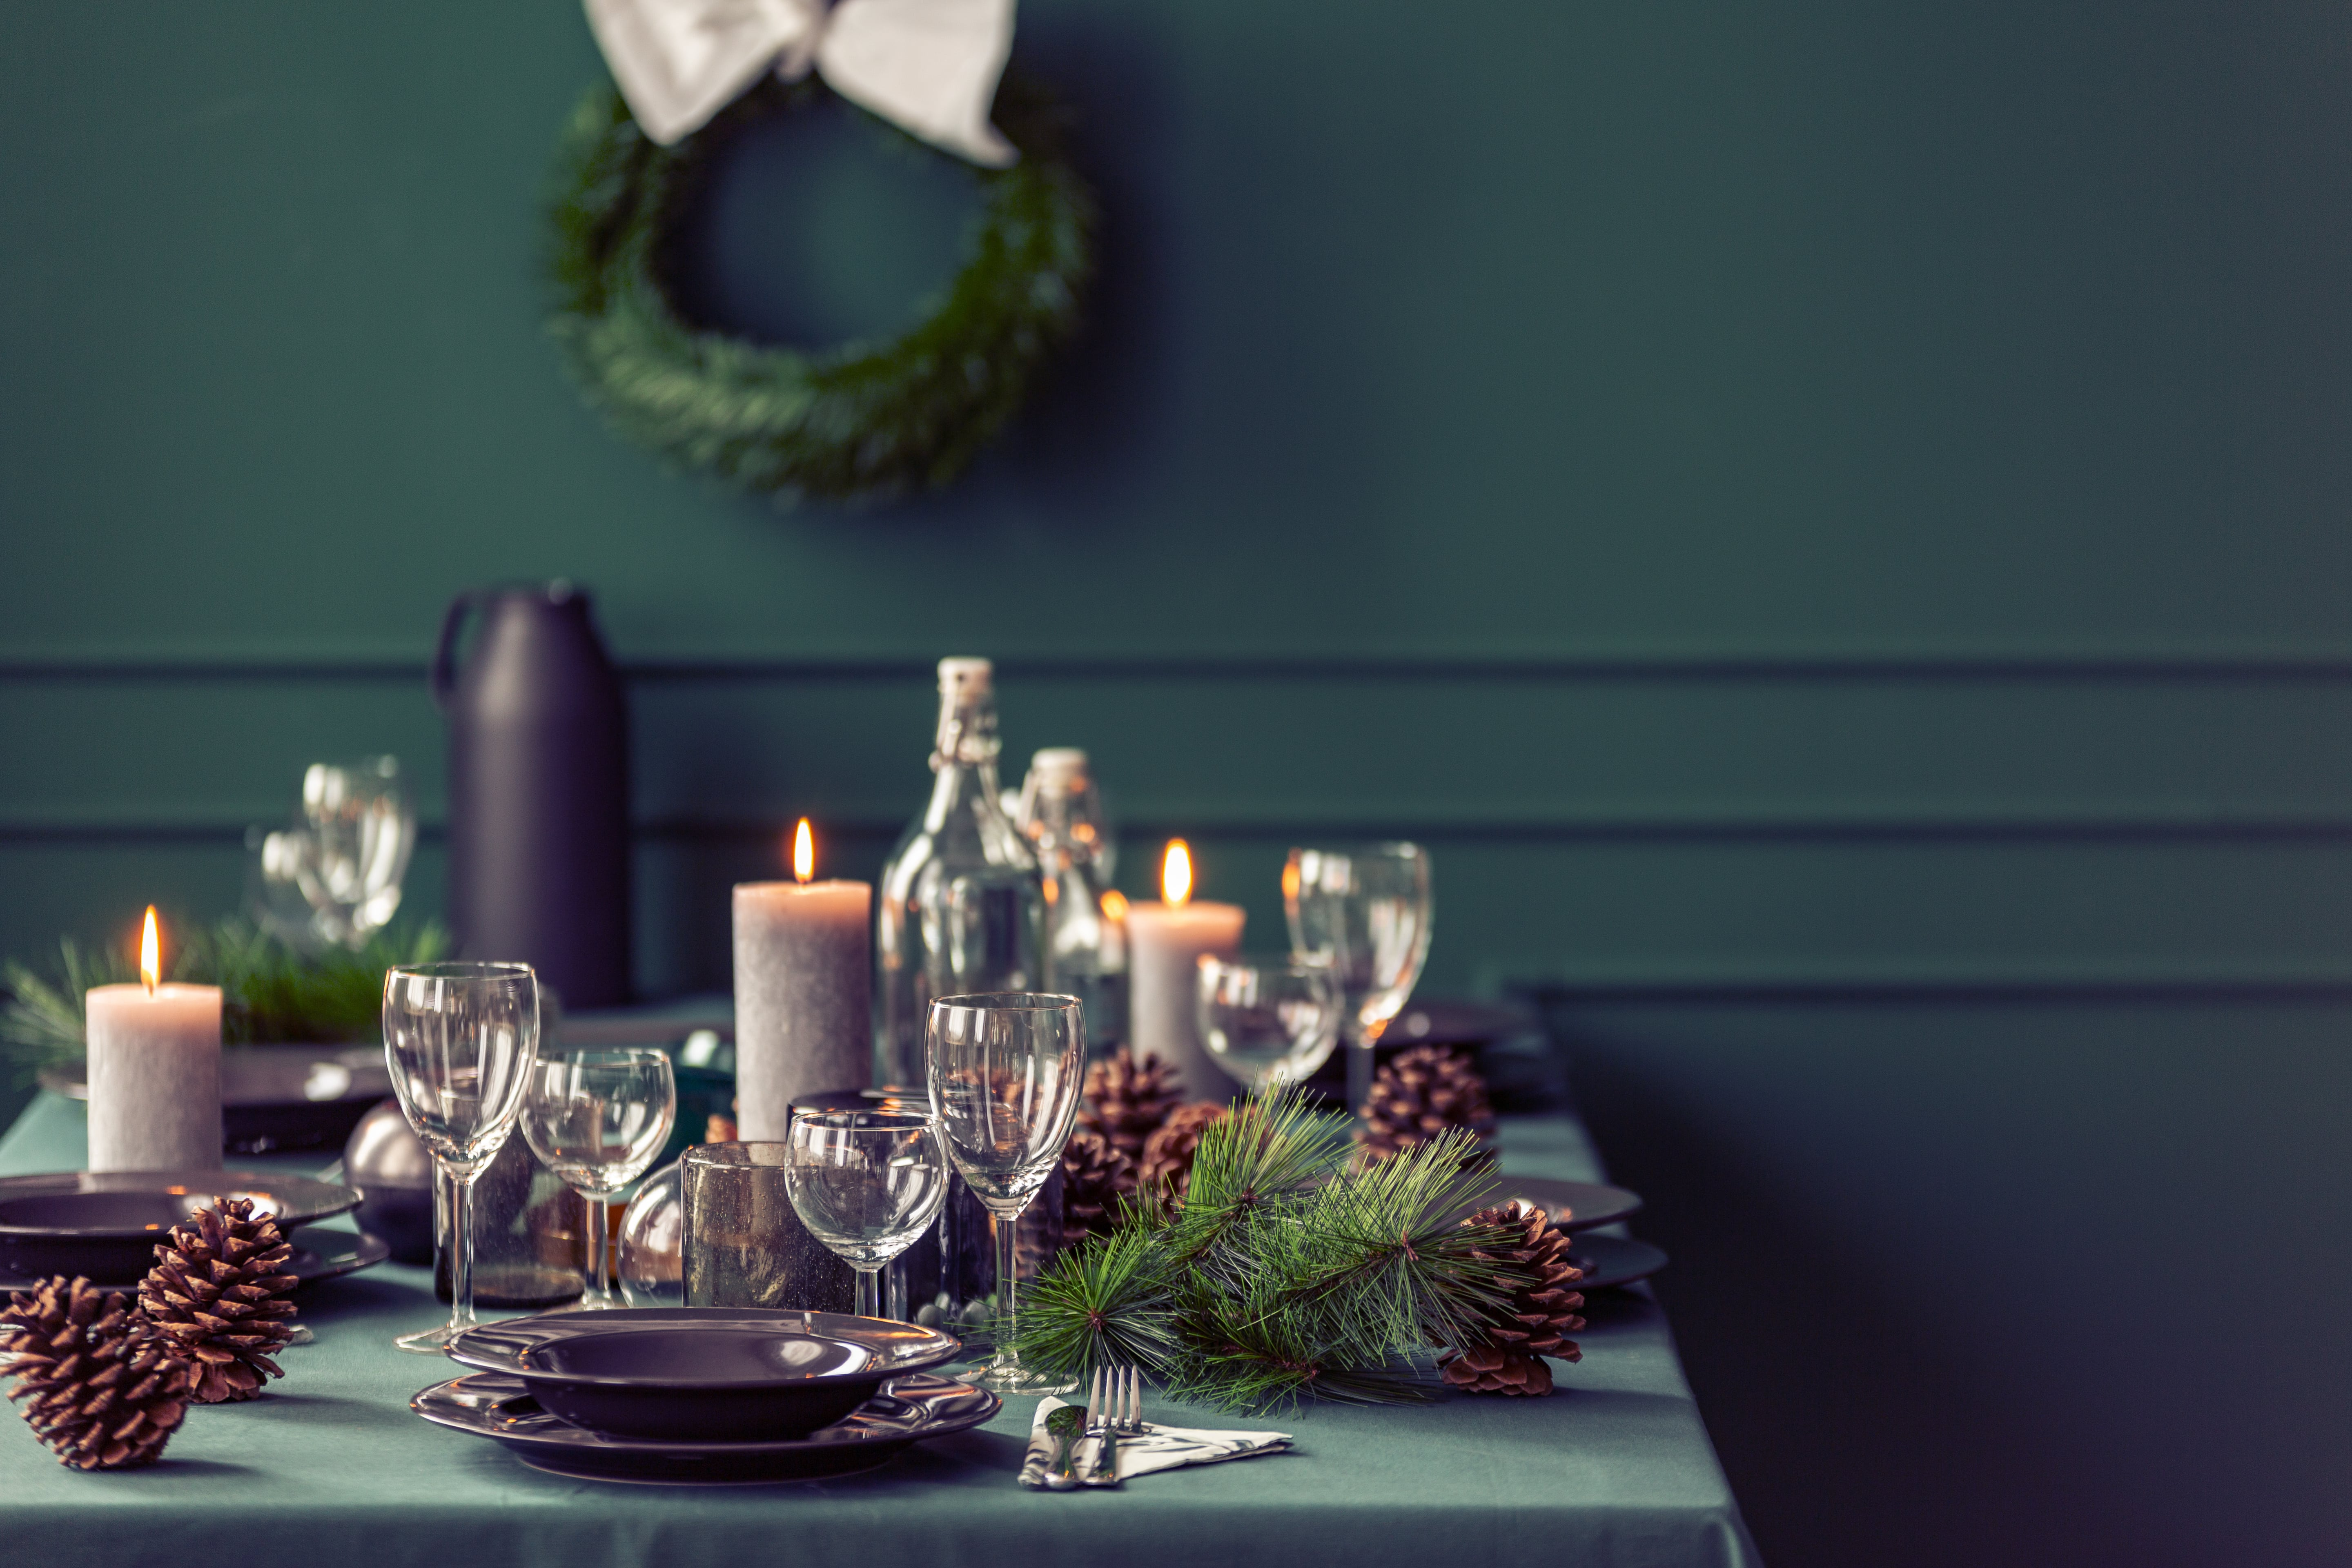 Dinner table setting for a festive gathering